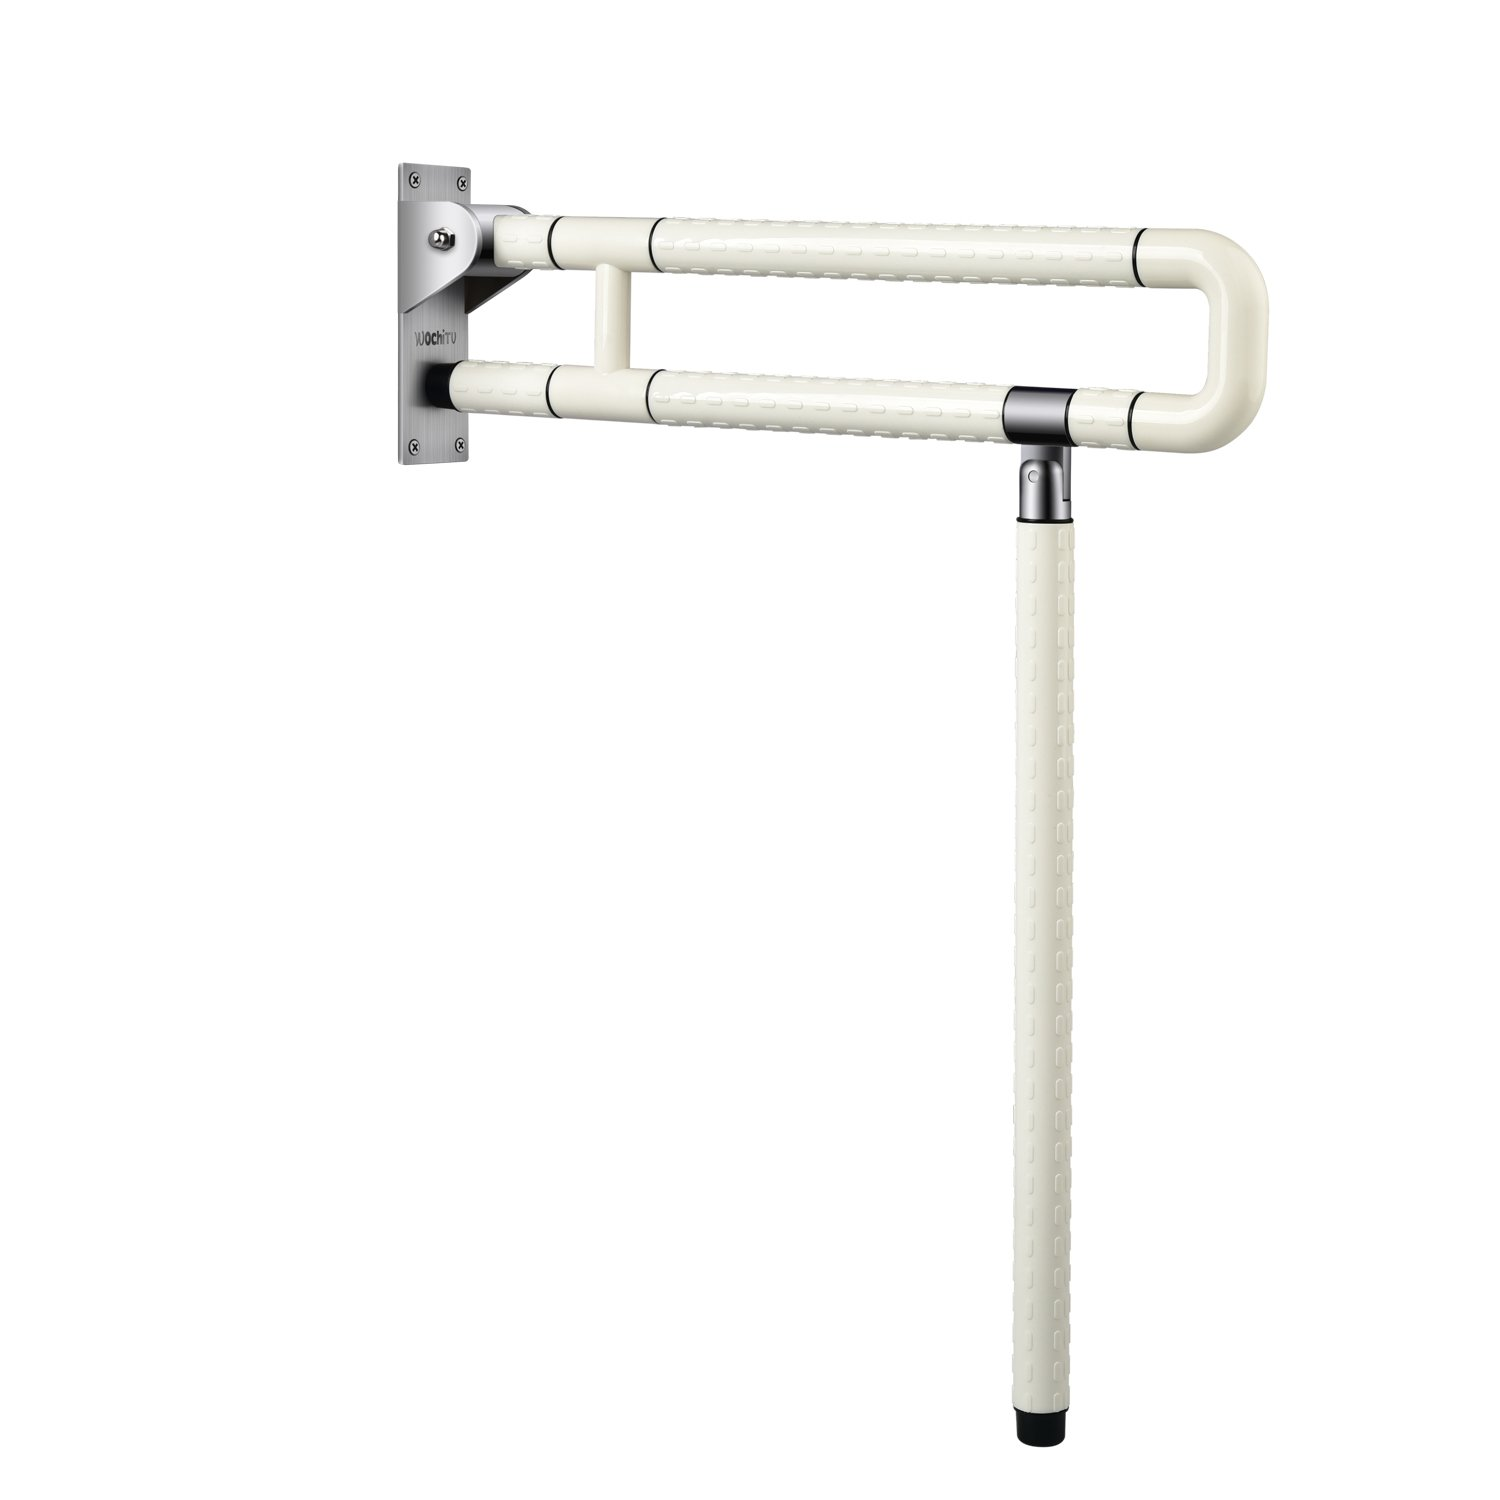 Medical Safety Toilet Grab Bar Handicap Bathroom Seat Support Foldable Skid Resistance Toilet Bathroom Bar Bathroom Hand Grips for Disability Aid and Elderly Assistance (White)